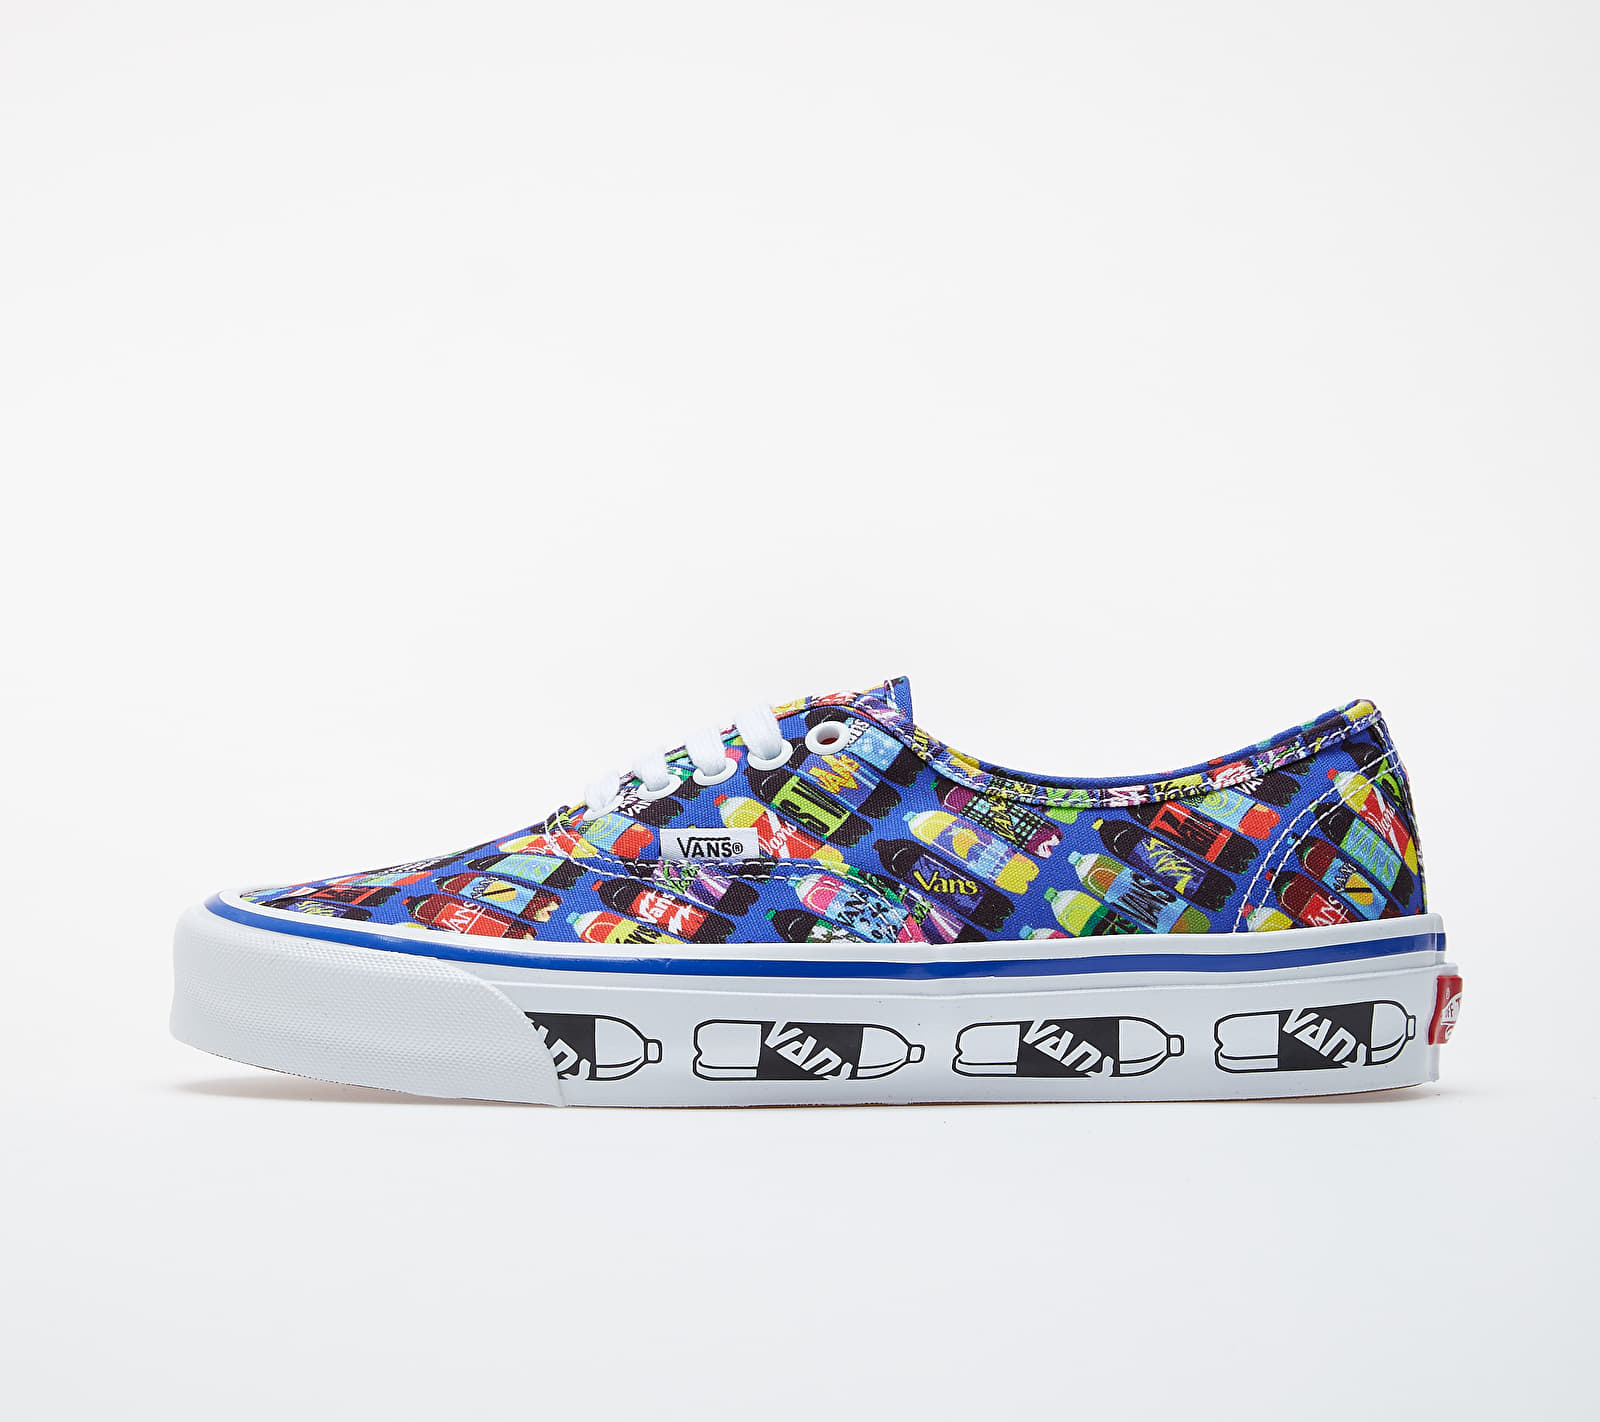 Vans x Fergus Purcell OG Authentic LX (Fergadelic) Cornship Drink VN0A4BV90631